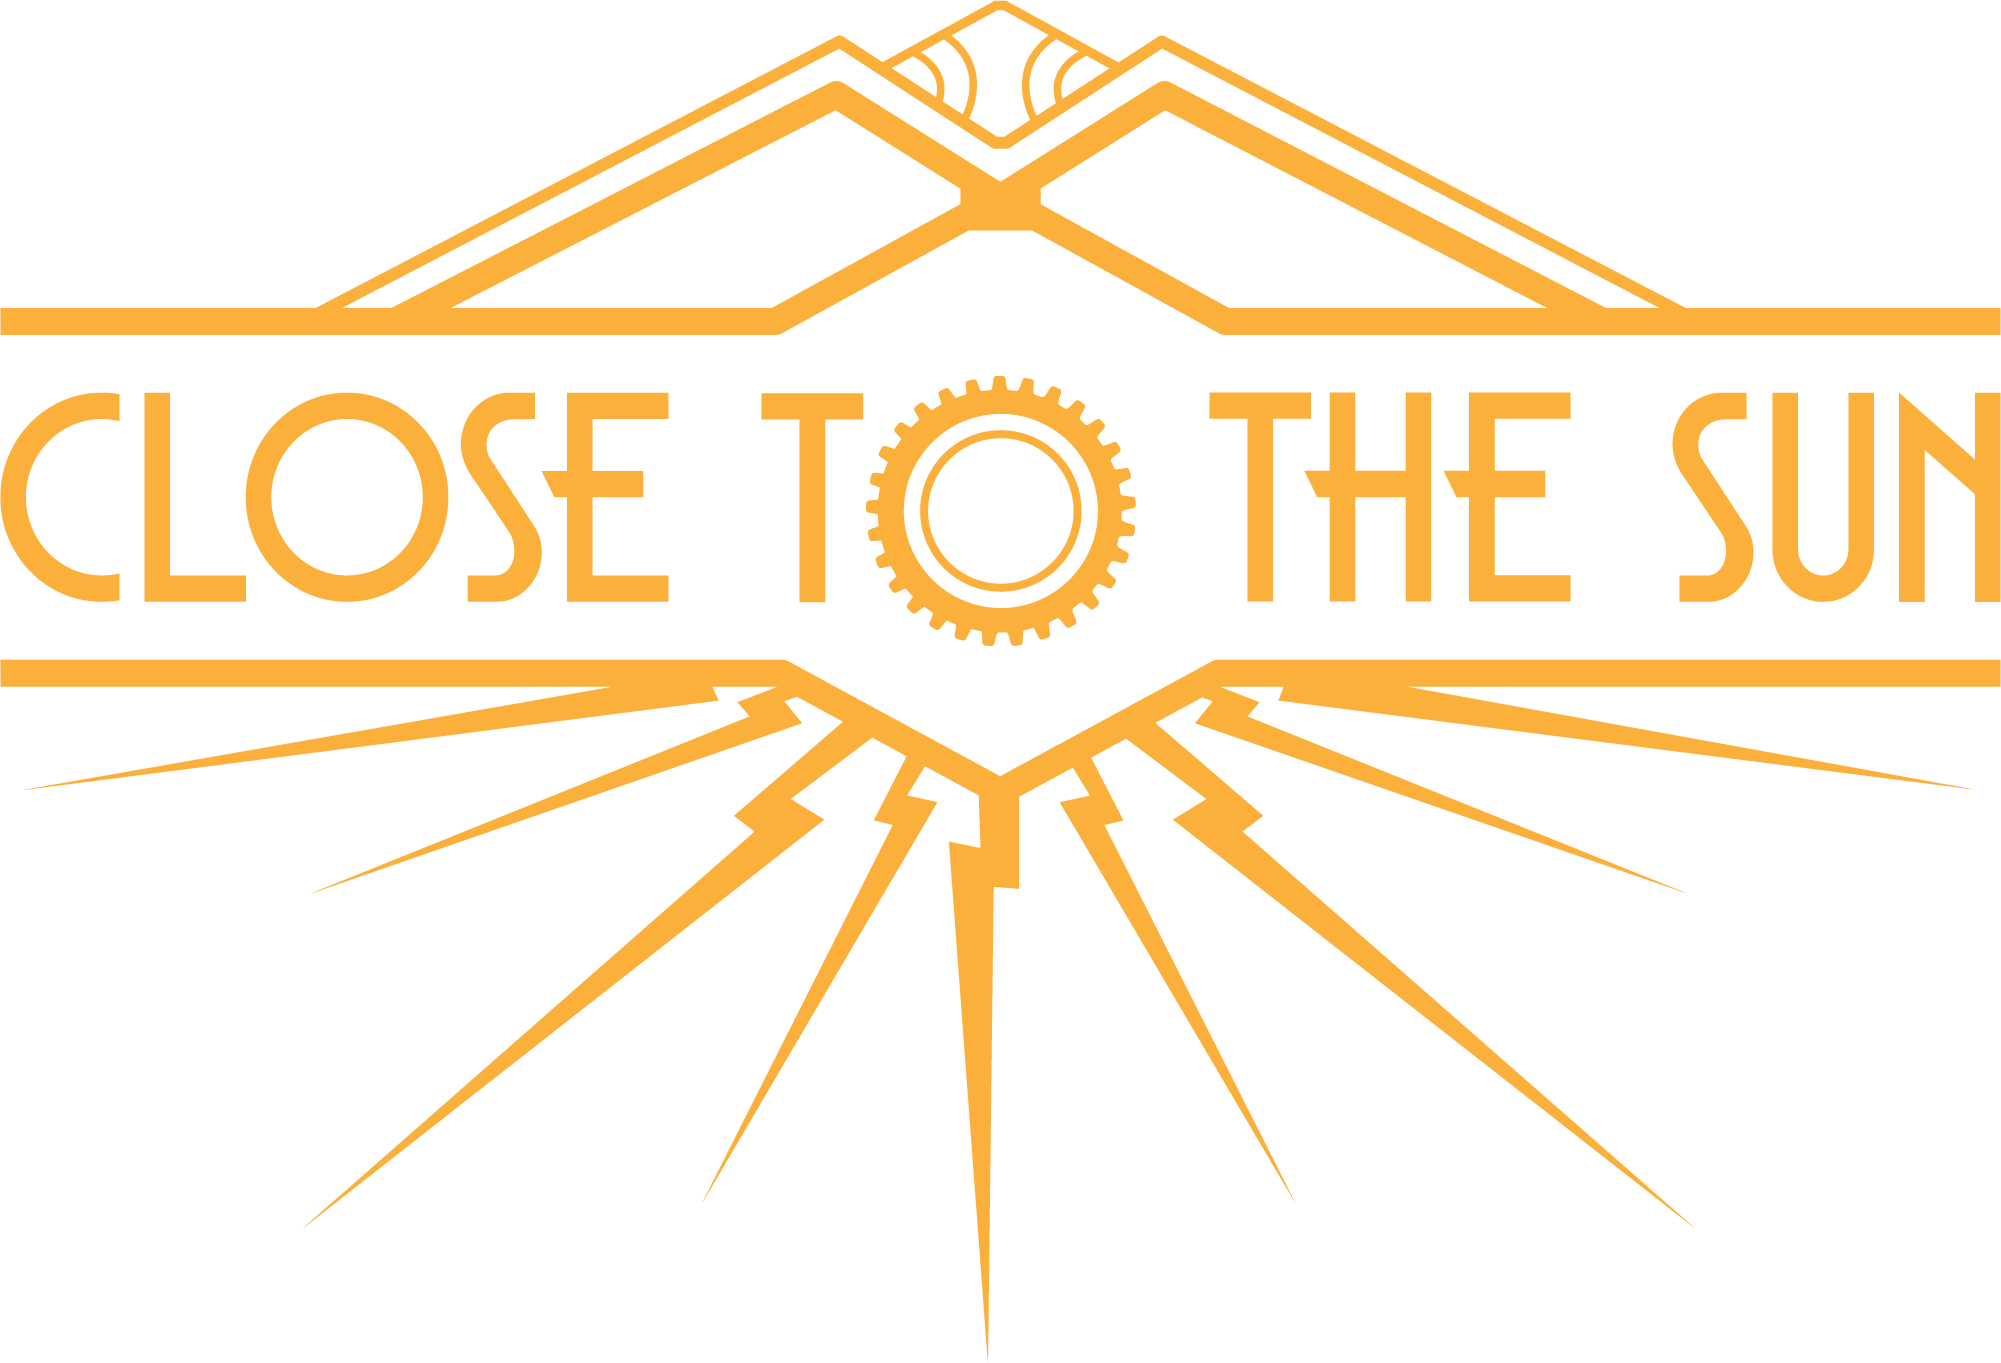 Close to the Sun   Download and Buy Today - Epic Games Store